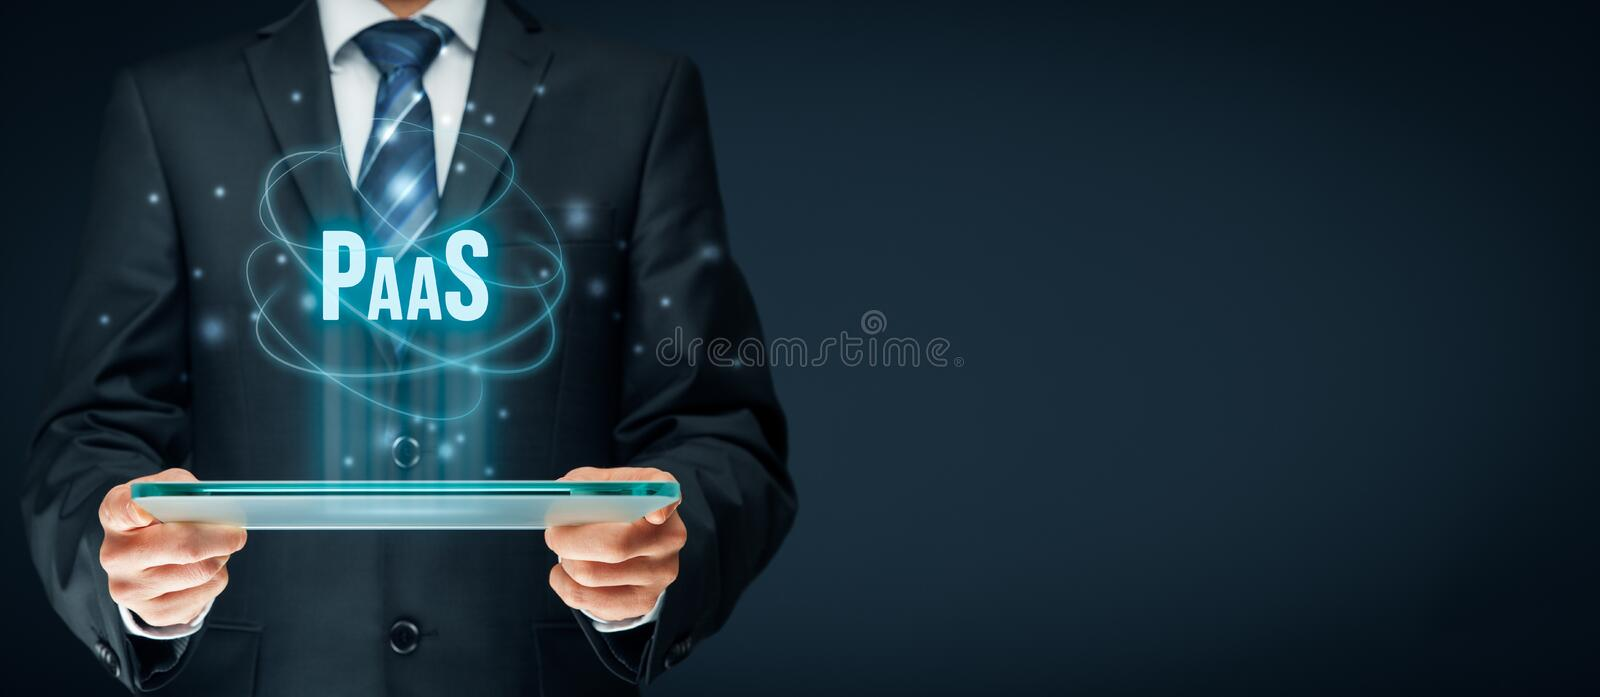 Platform as a service PaaS stock photo